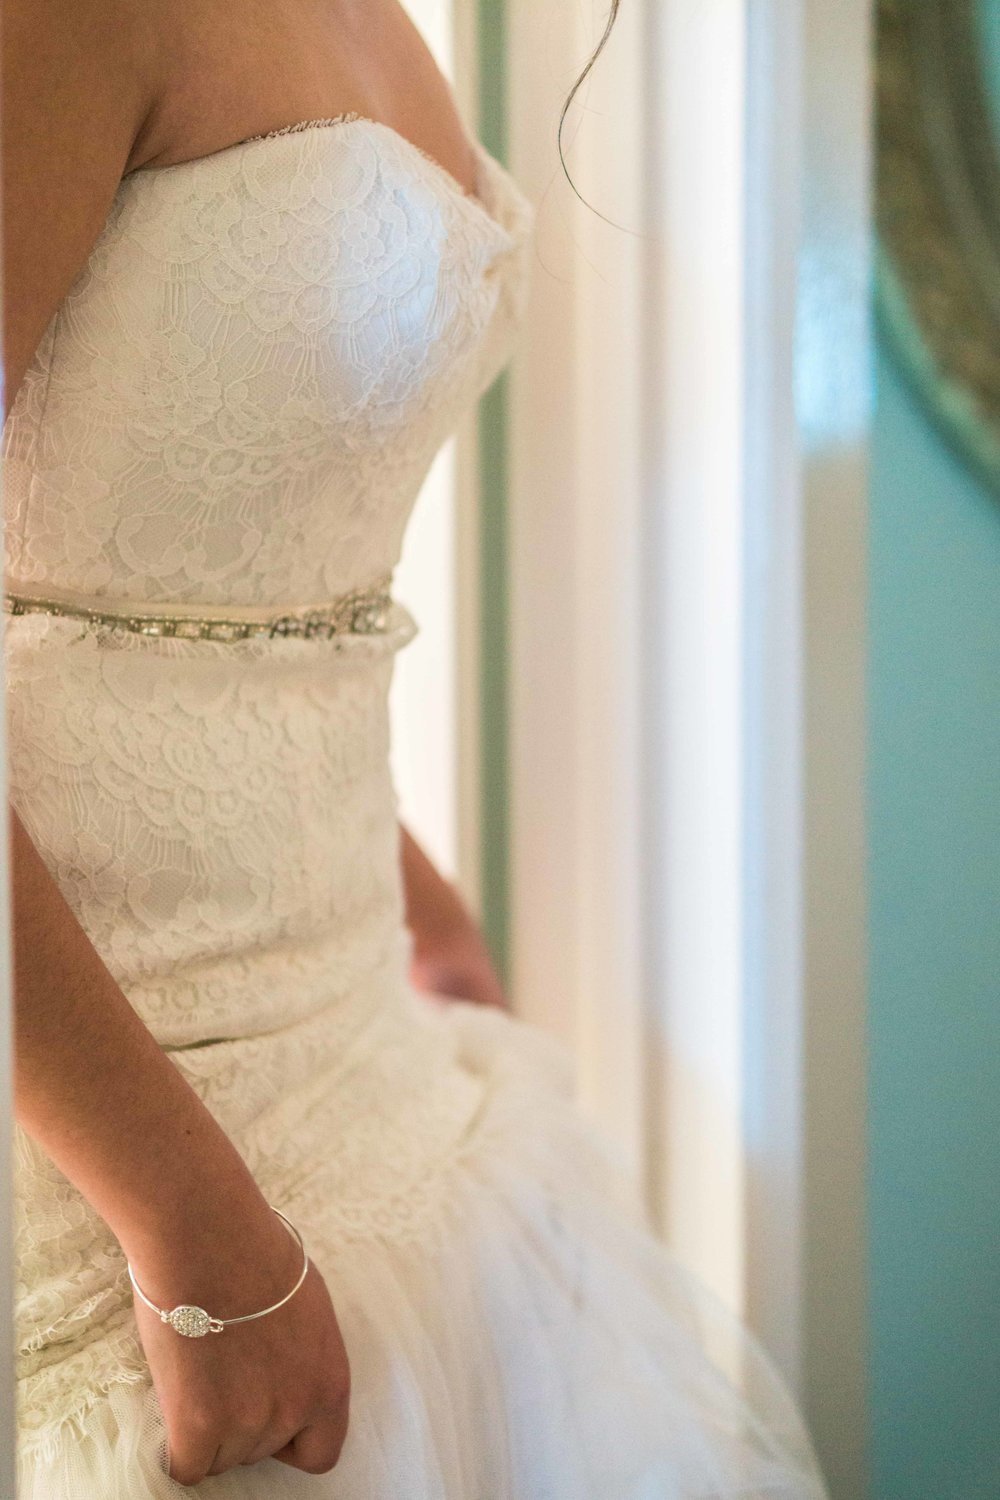 Beautiful candidate Color photo of the bride's Dress befor the ceremony on Balboa Island